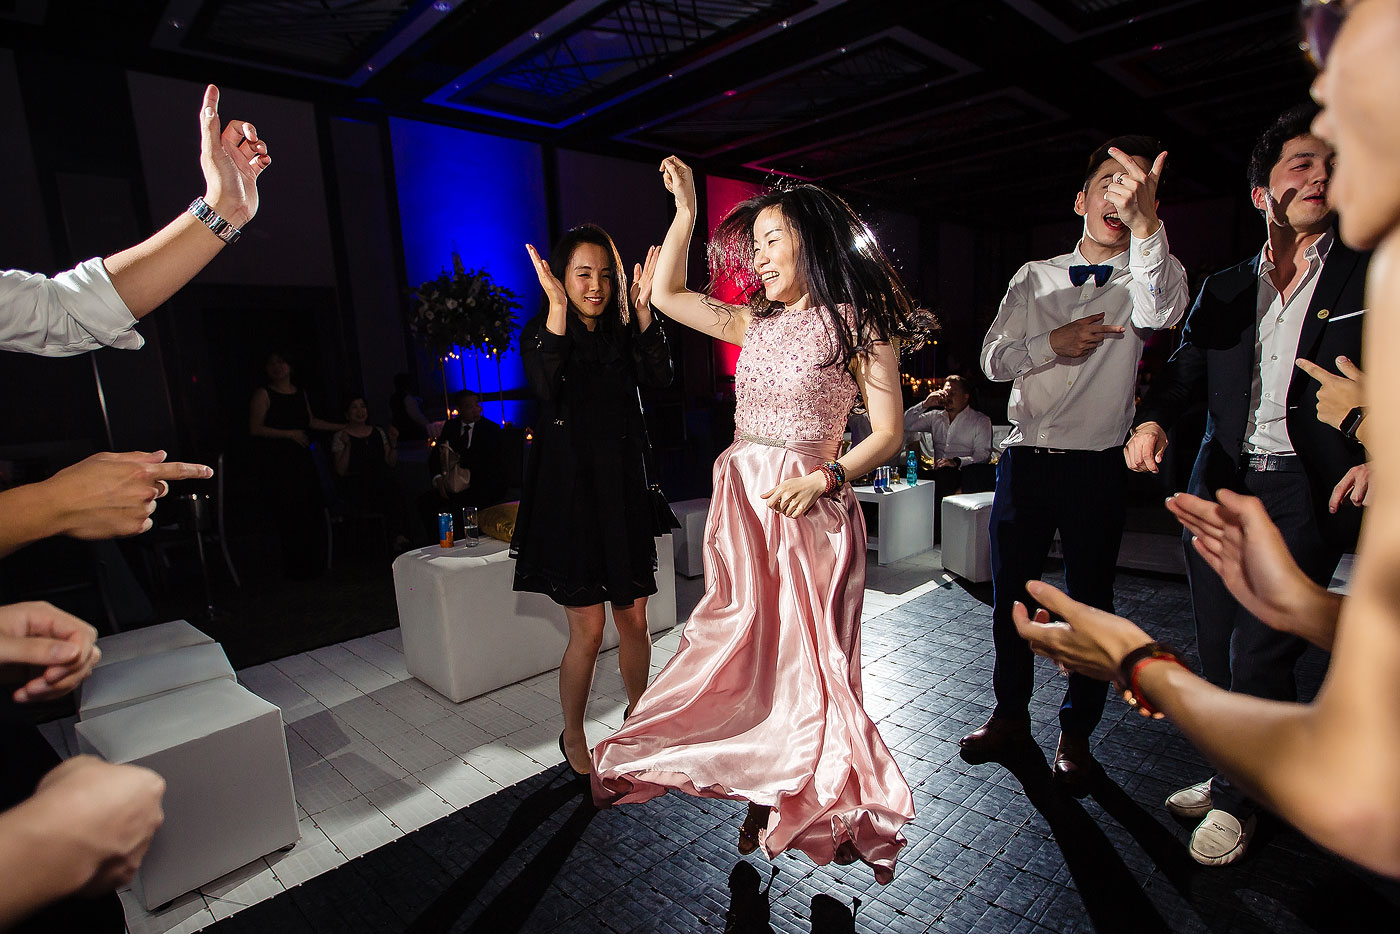 Chinese Wedding Dancing in South Africa